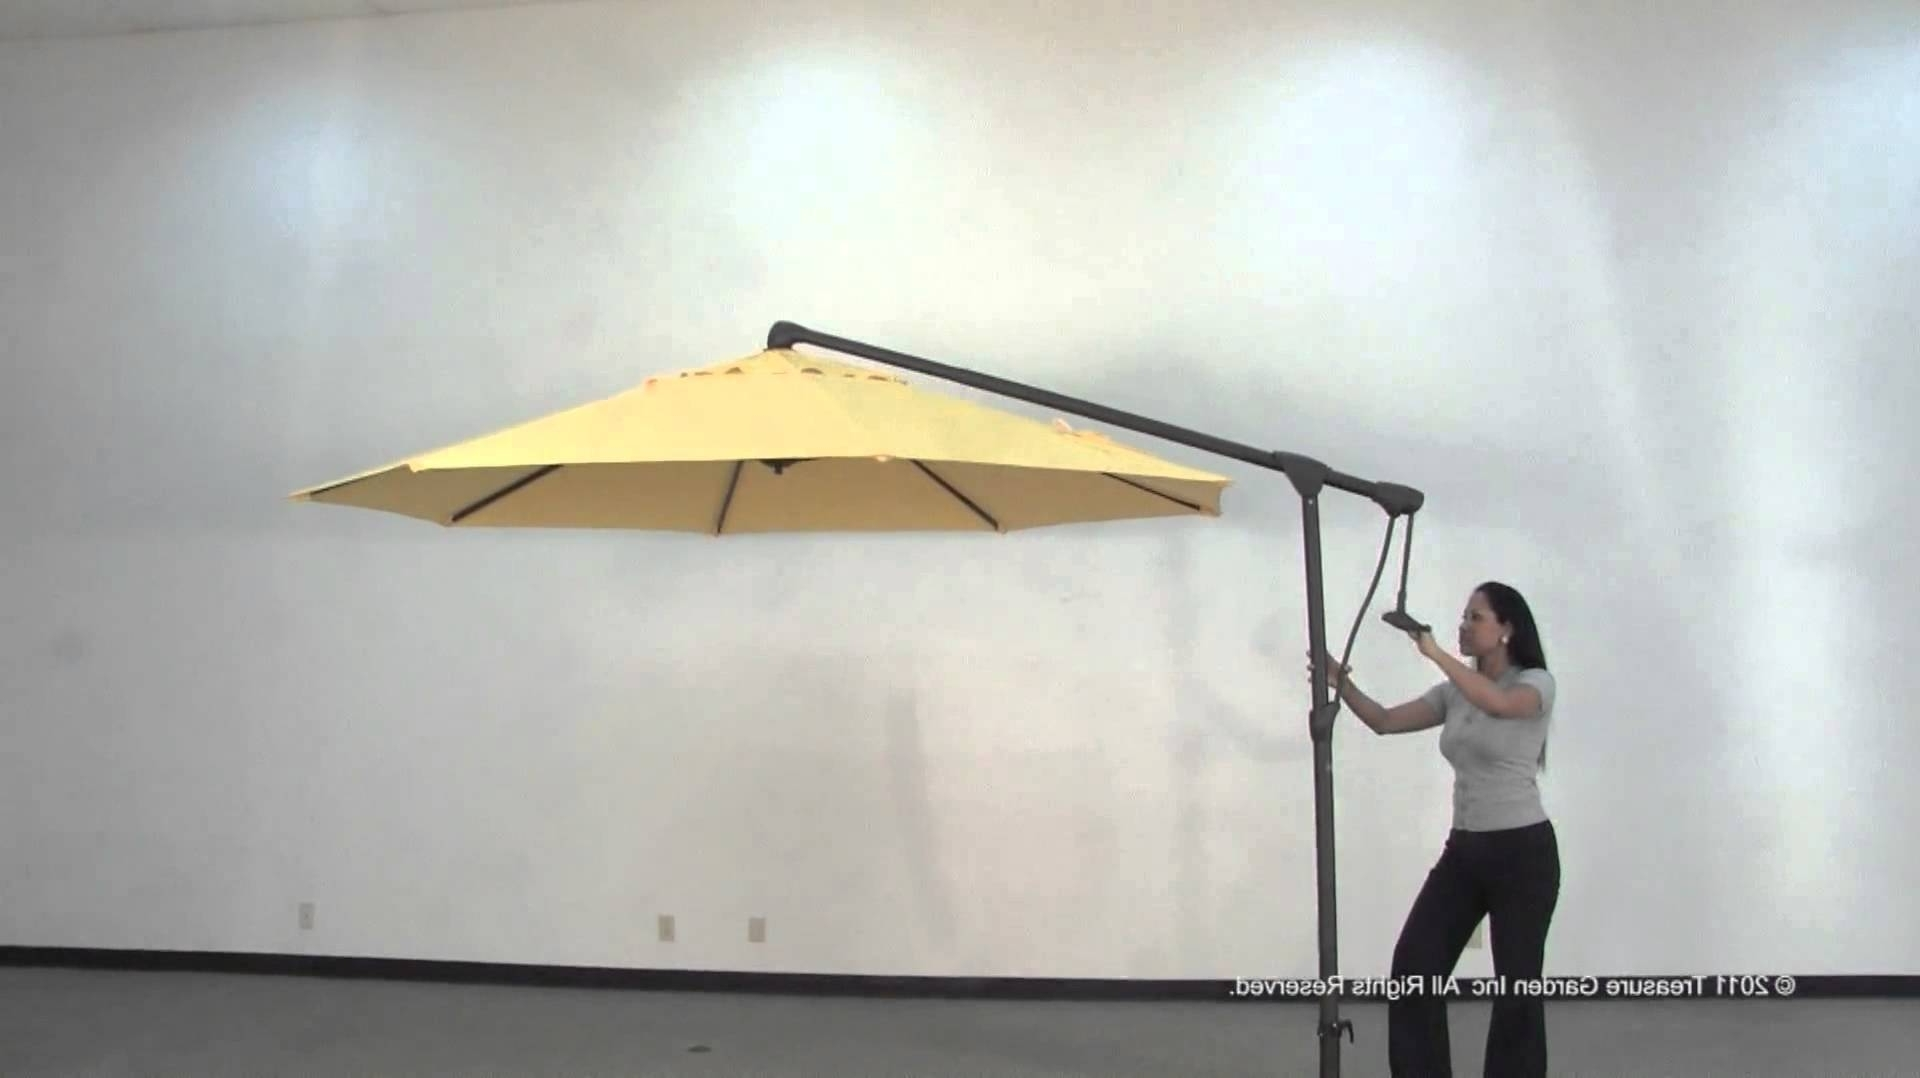 Side Mount Cantilever Outdoor Umbrella – Youtube For Most Current Ikea Patio Umbrellas (View 18 of 20)